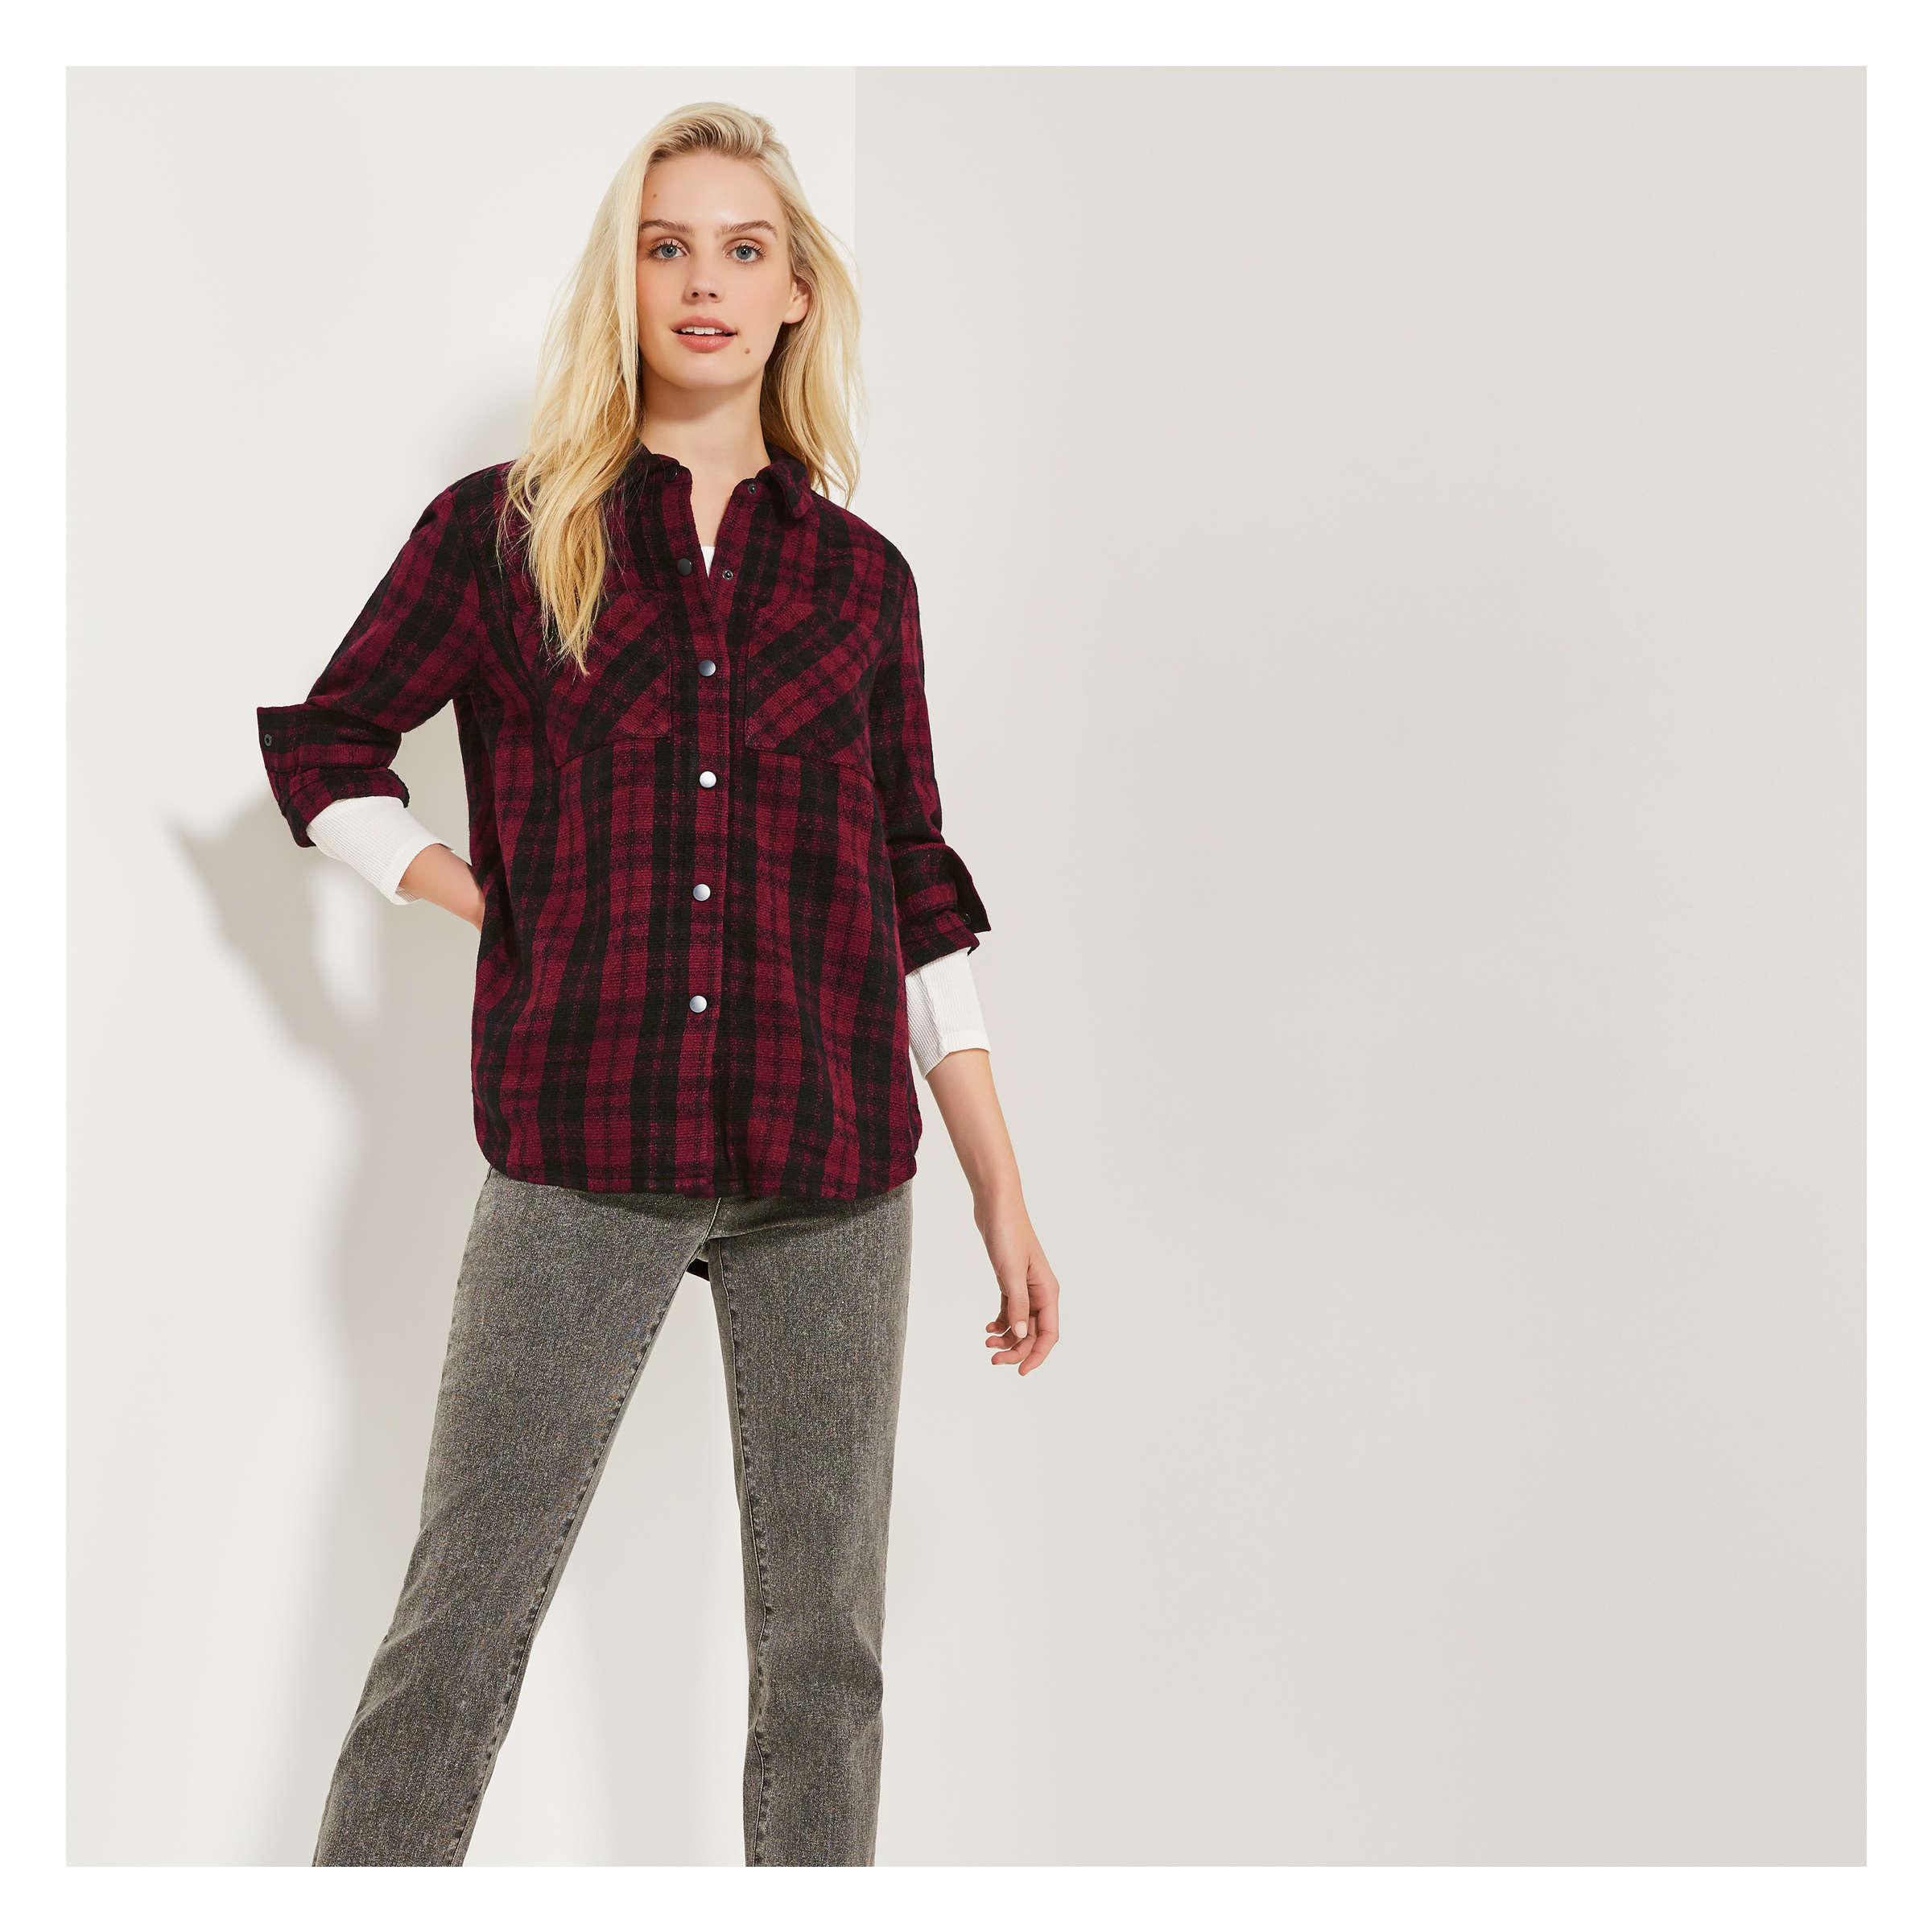 Plaid Tweed Shirt by Joe Fresh